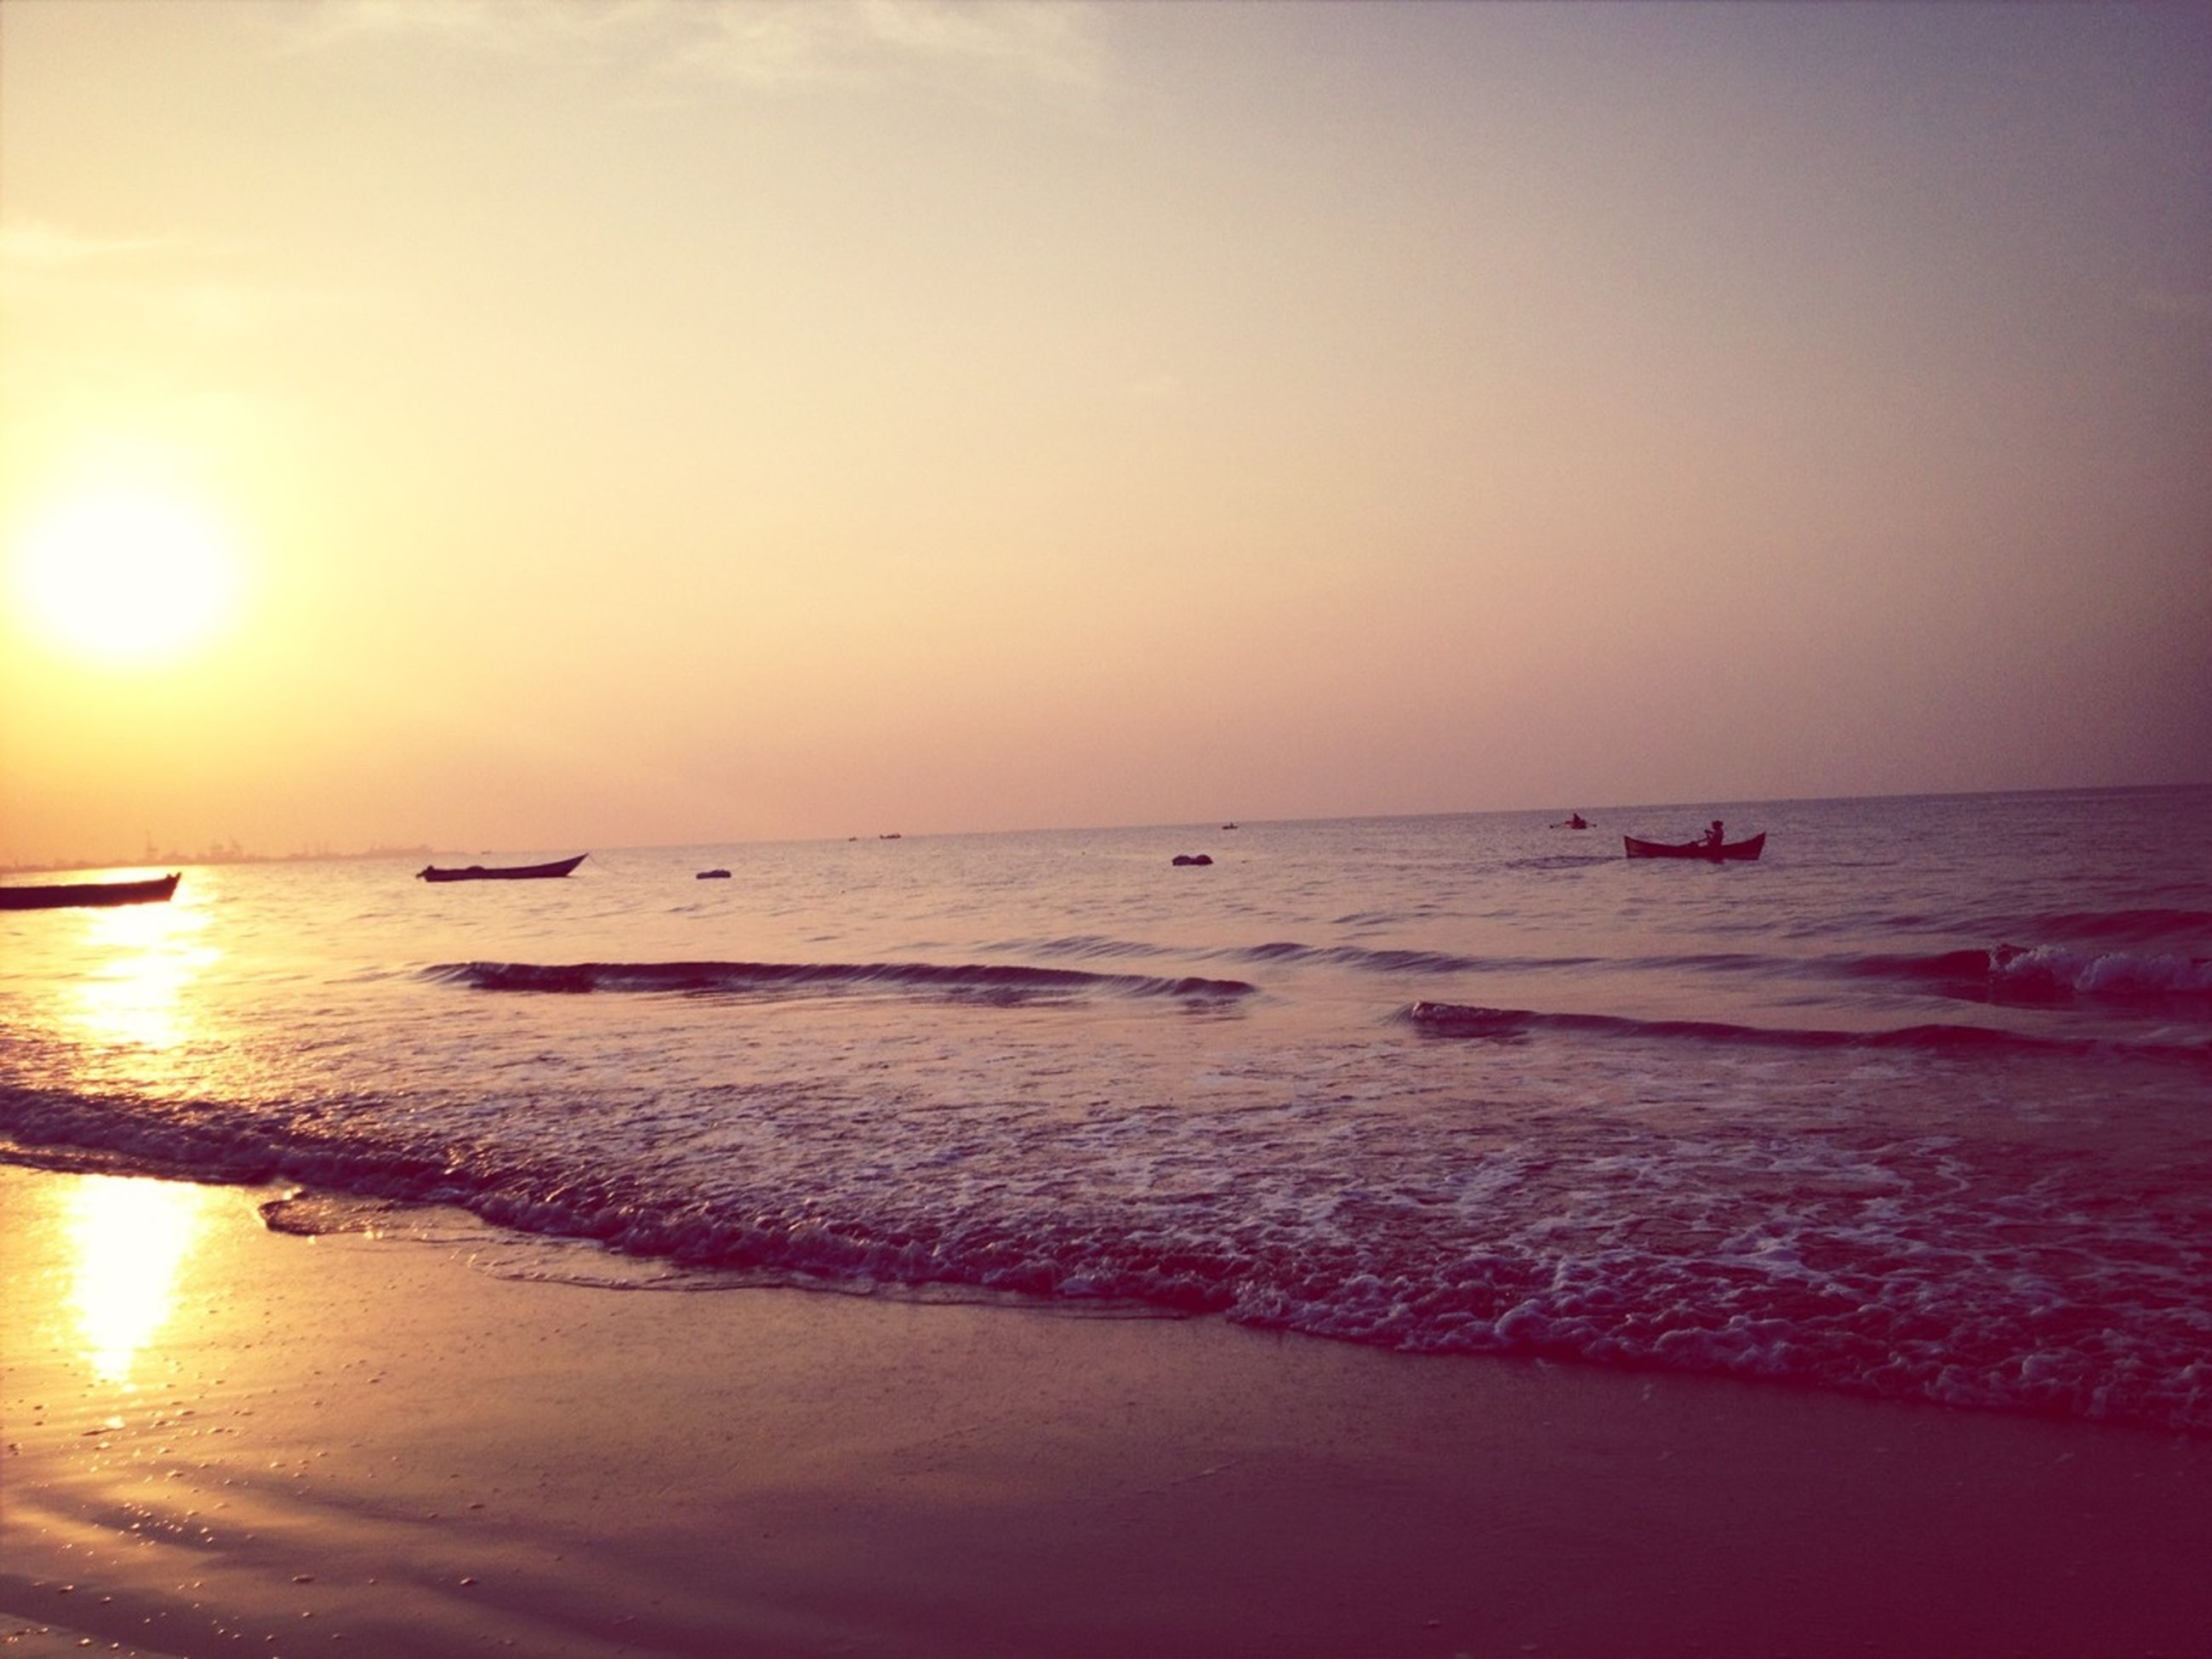 sea, horizon over water, water, sunset, beach, scenics, tranquil scene, beauty in nature, tranquility, sun, nautical vessel, shore, idyllic, nature, orange color, boat, transportation, sky, clear sky, reflection